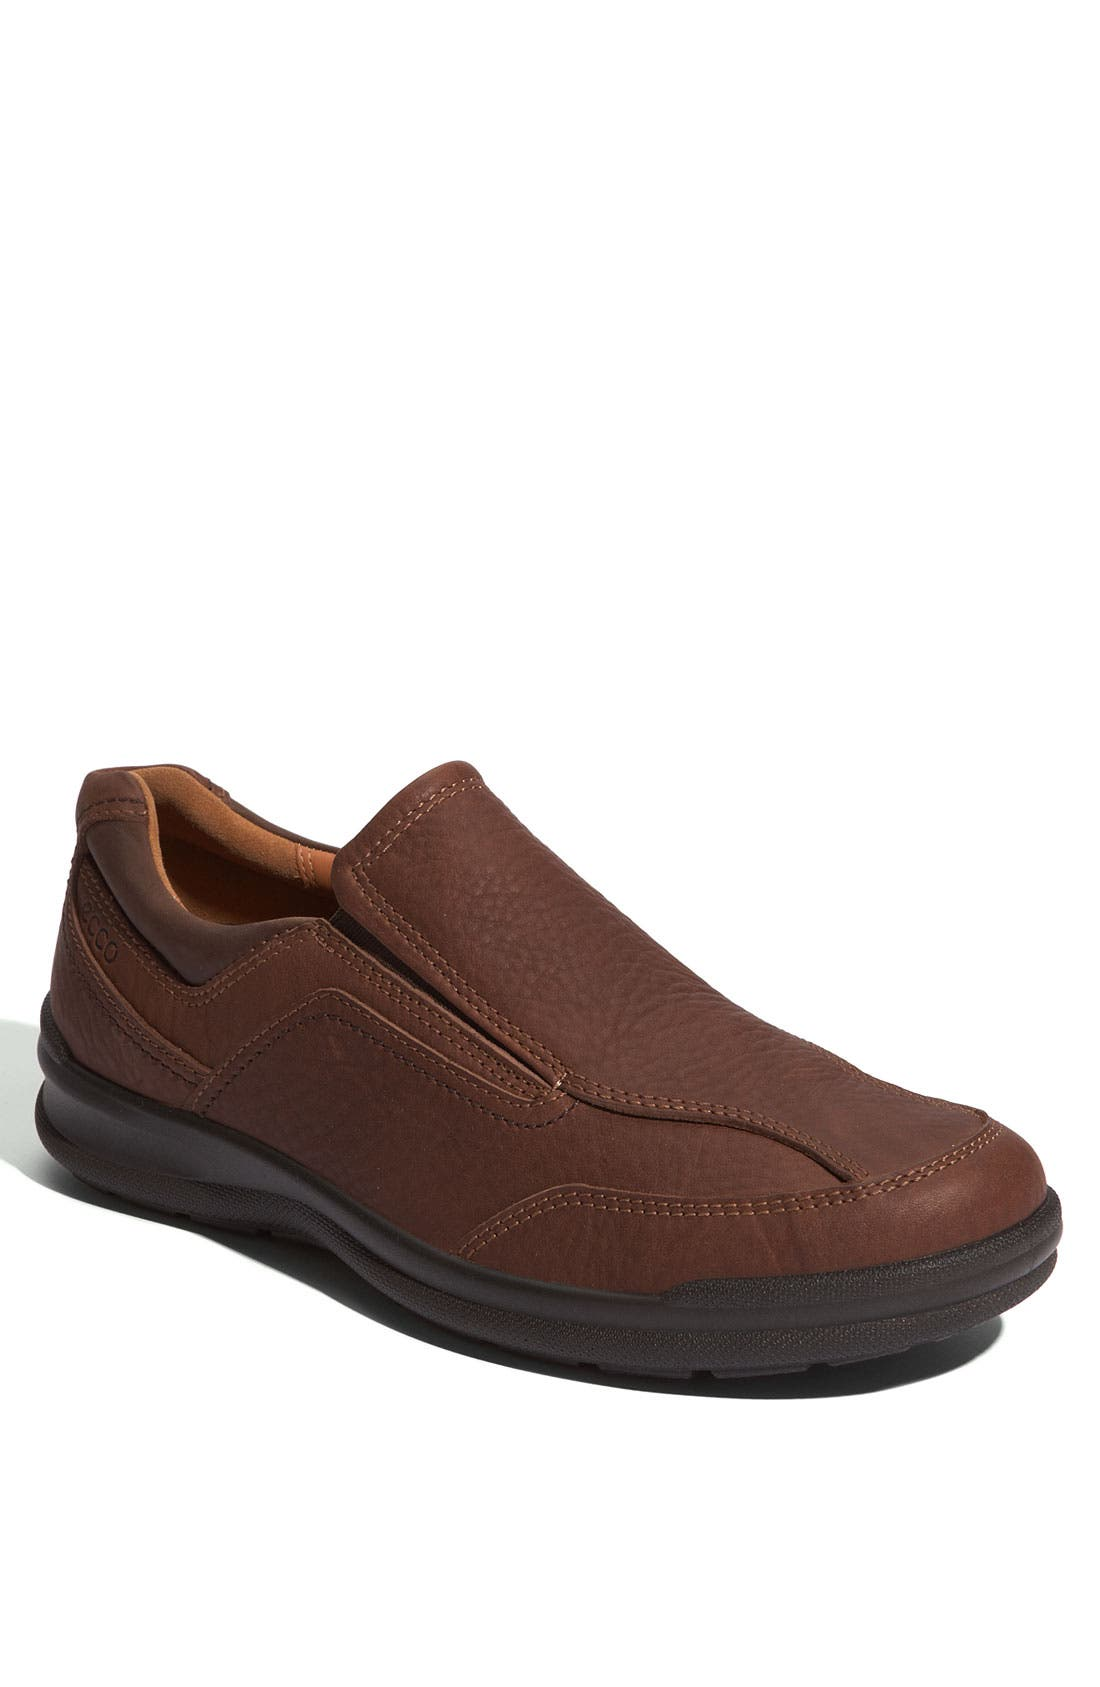 Main Image - ECCO 'Remote' Slip-On